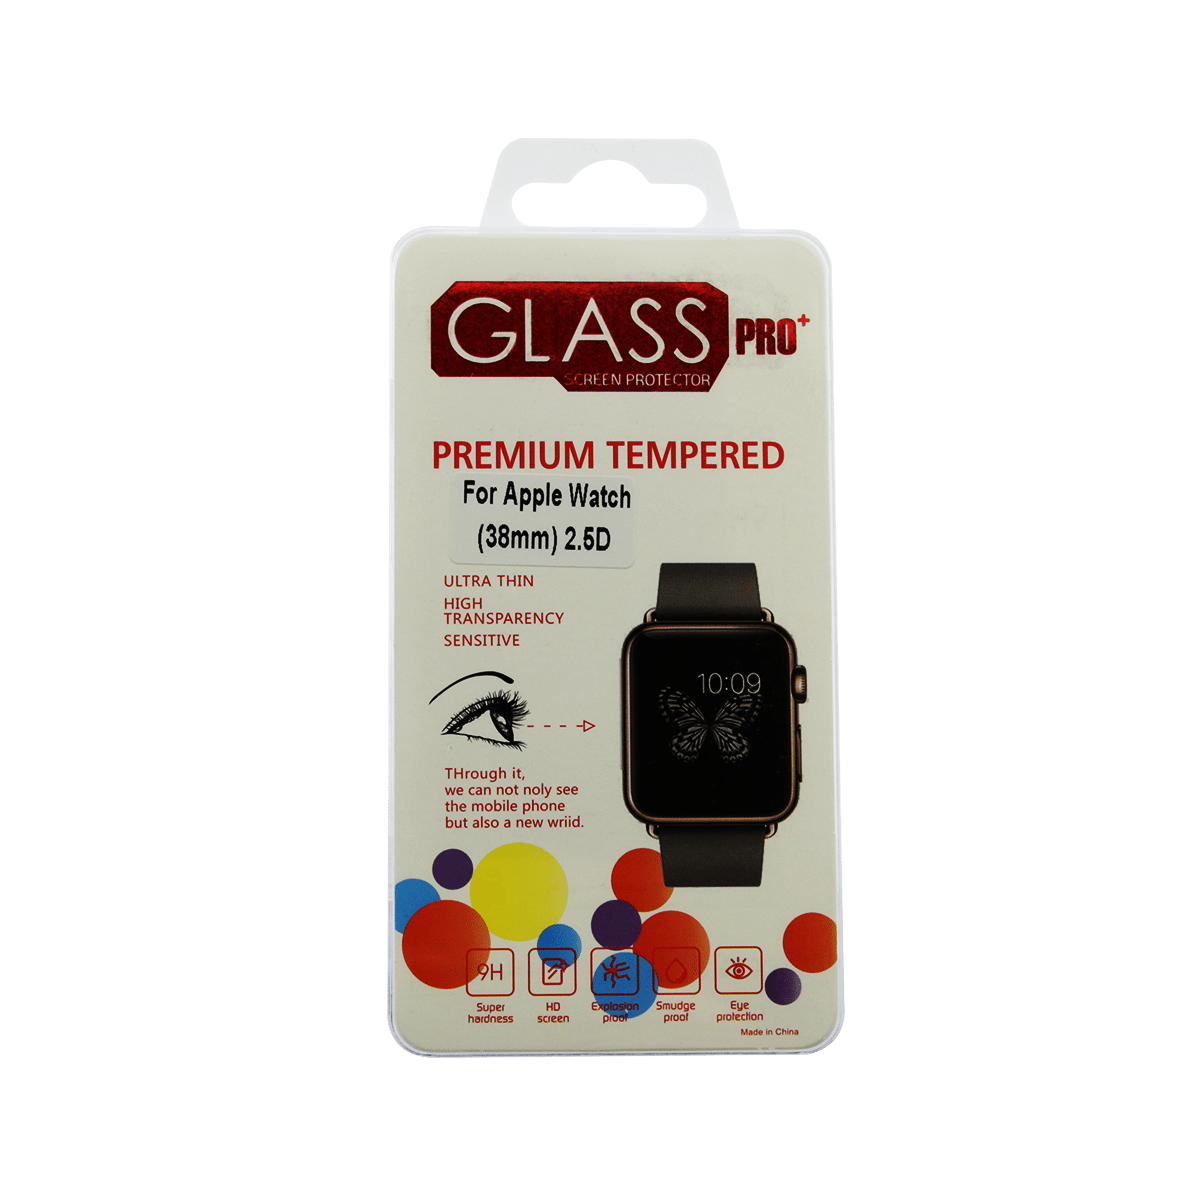 Apple Watch Tempered Glass Protection Screen Replacement